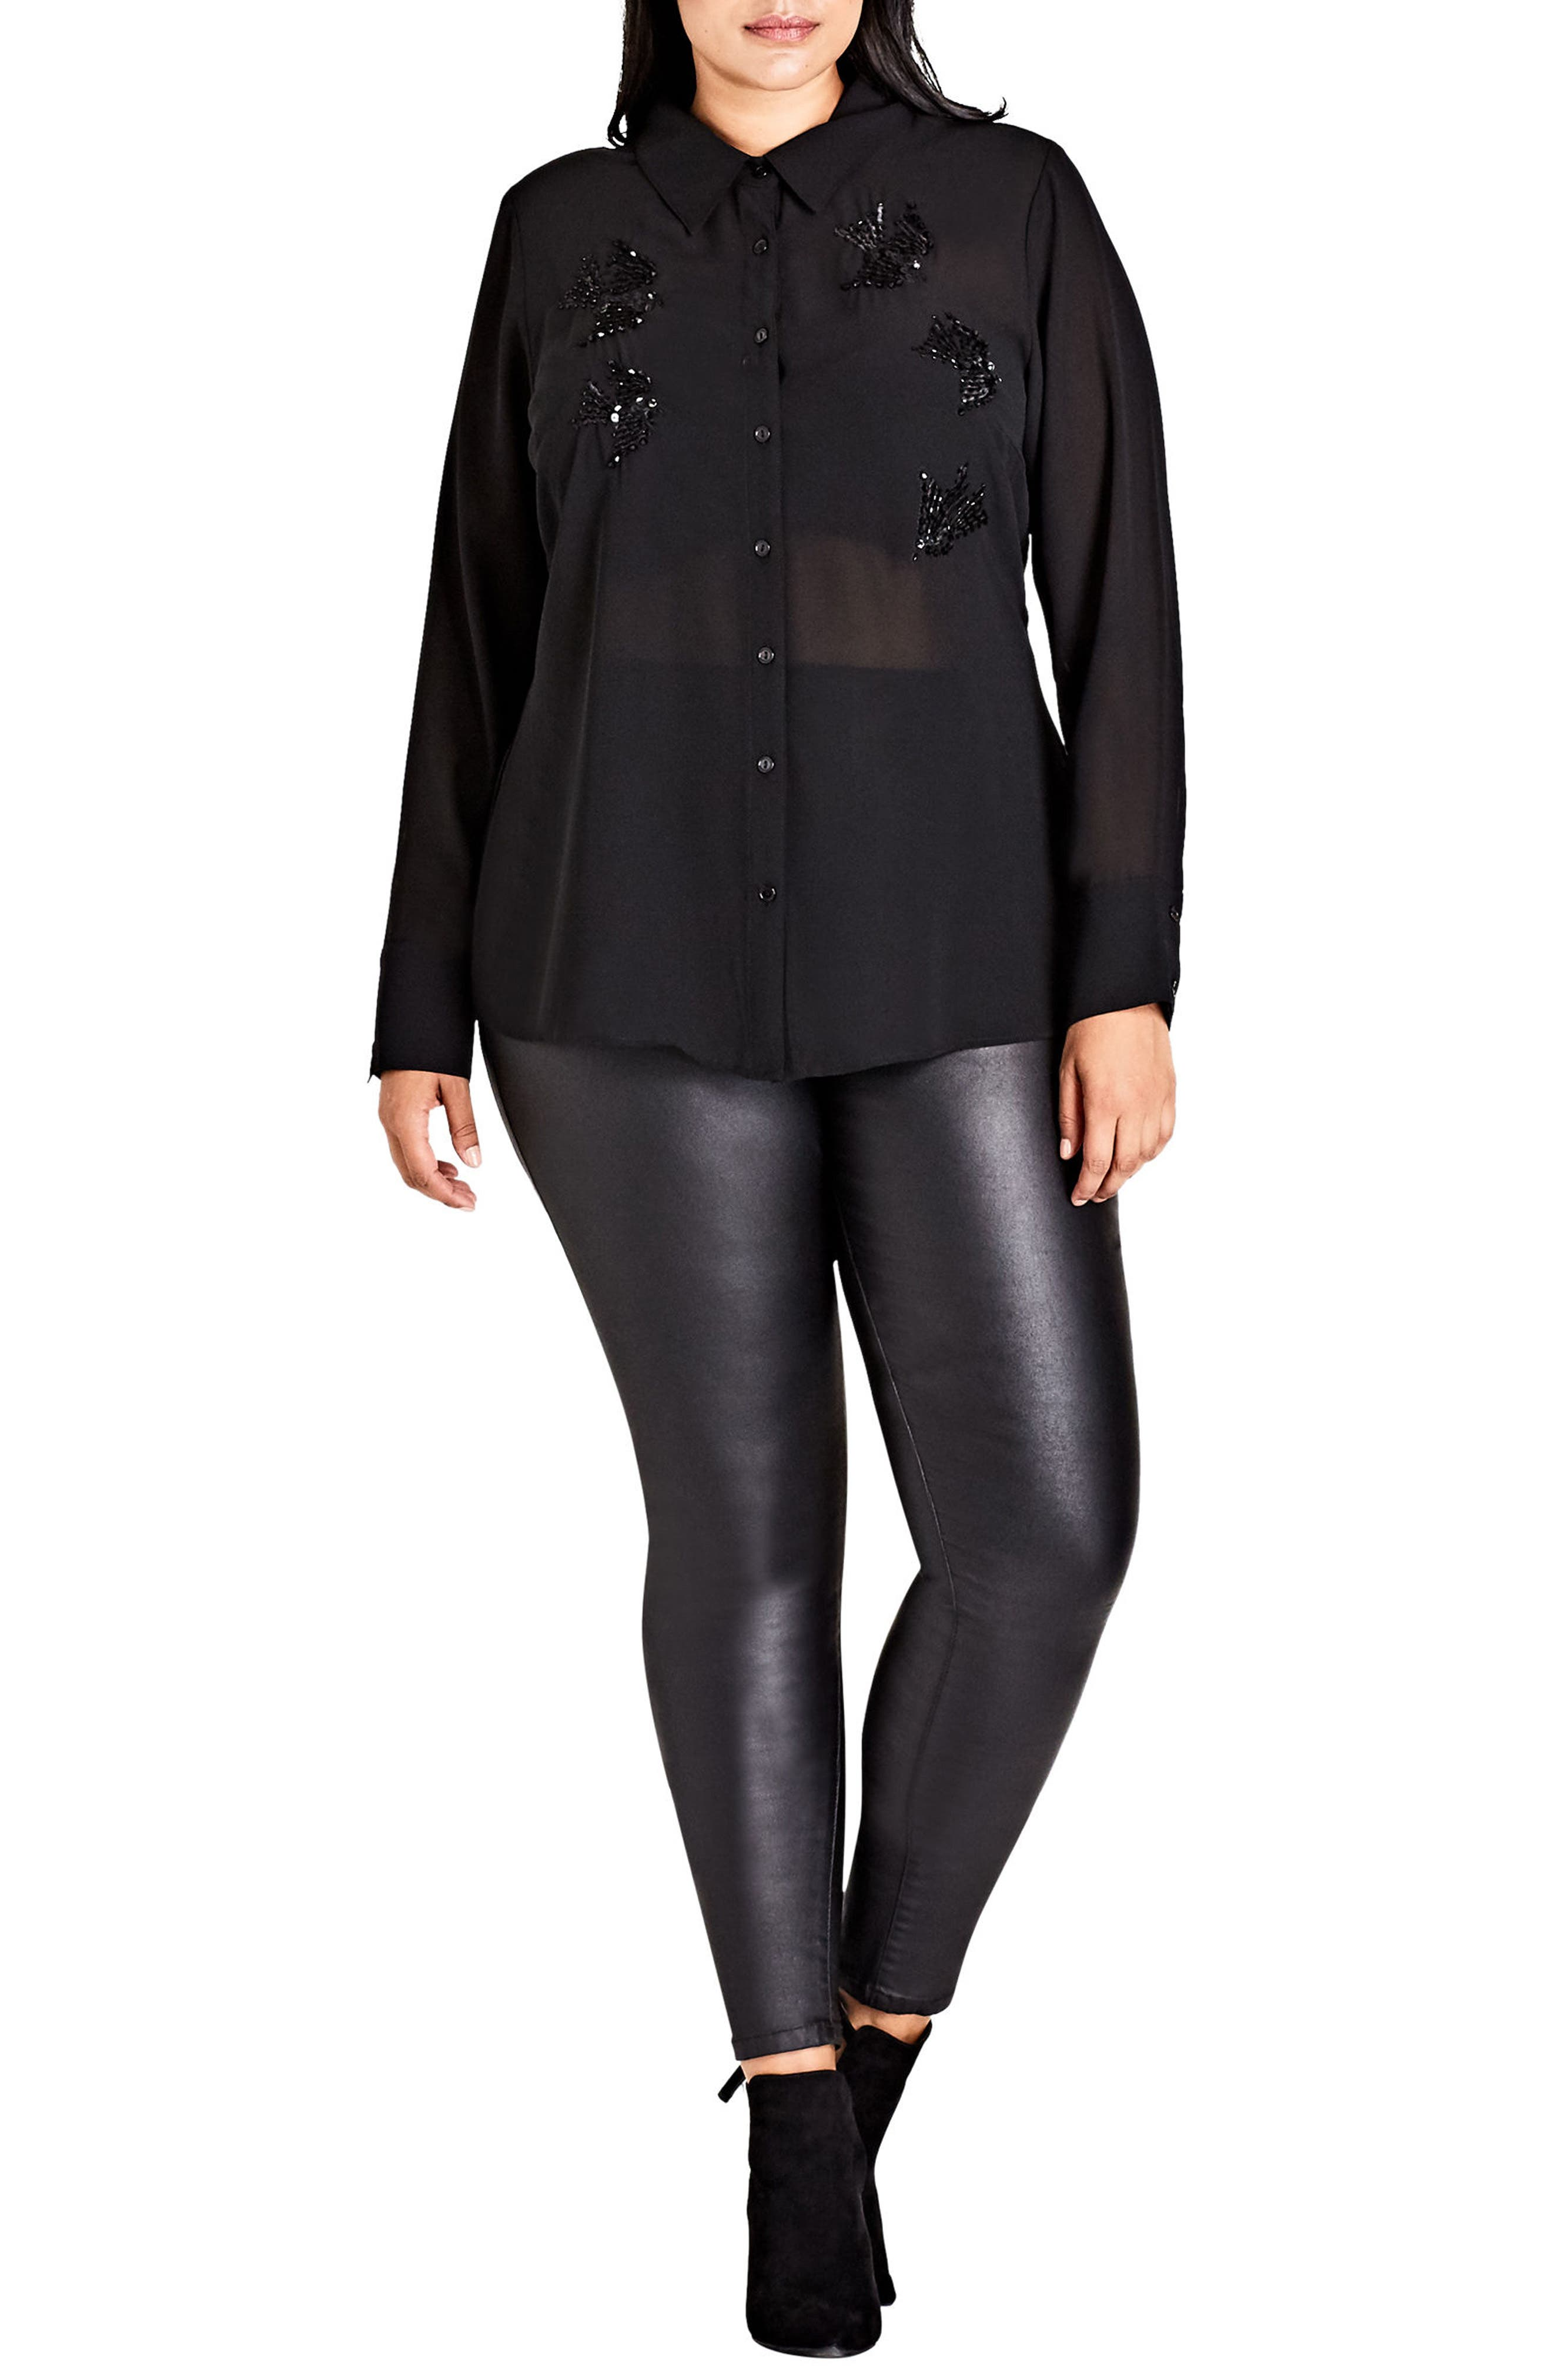 Main Image - City Chic Fly Away Embellished Sheer Shirt (Plus Size)